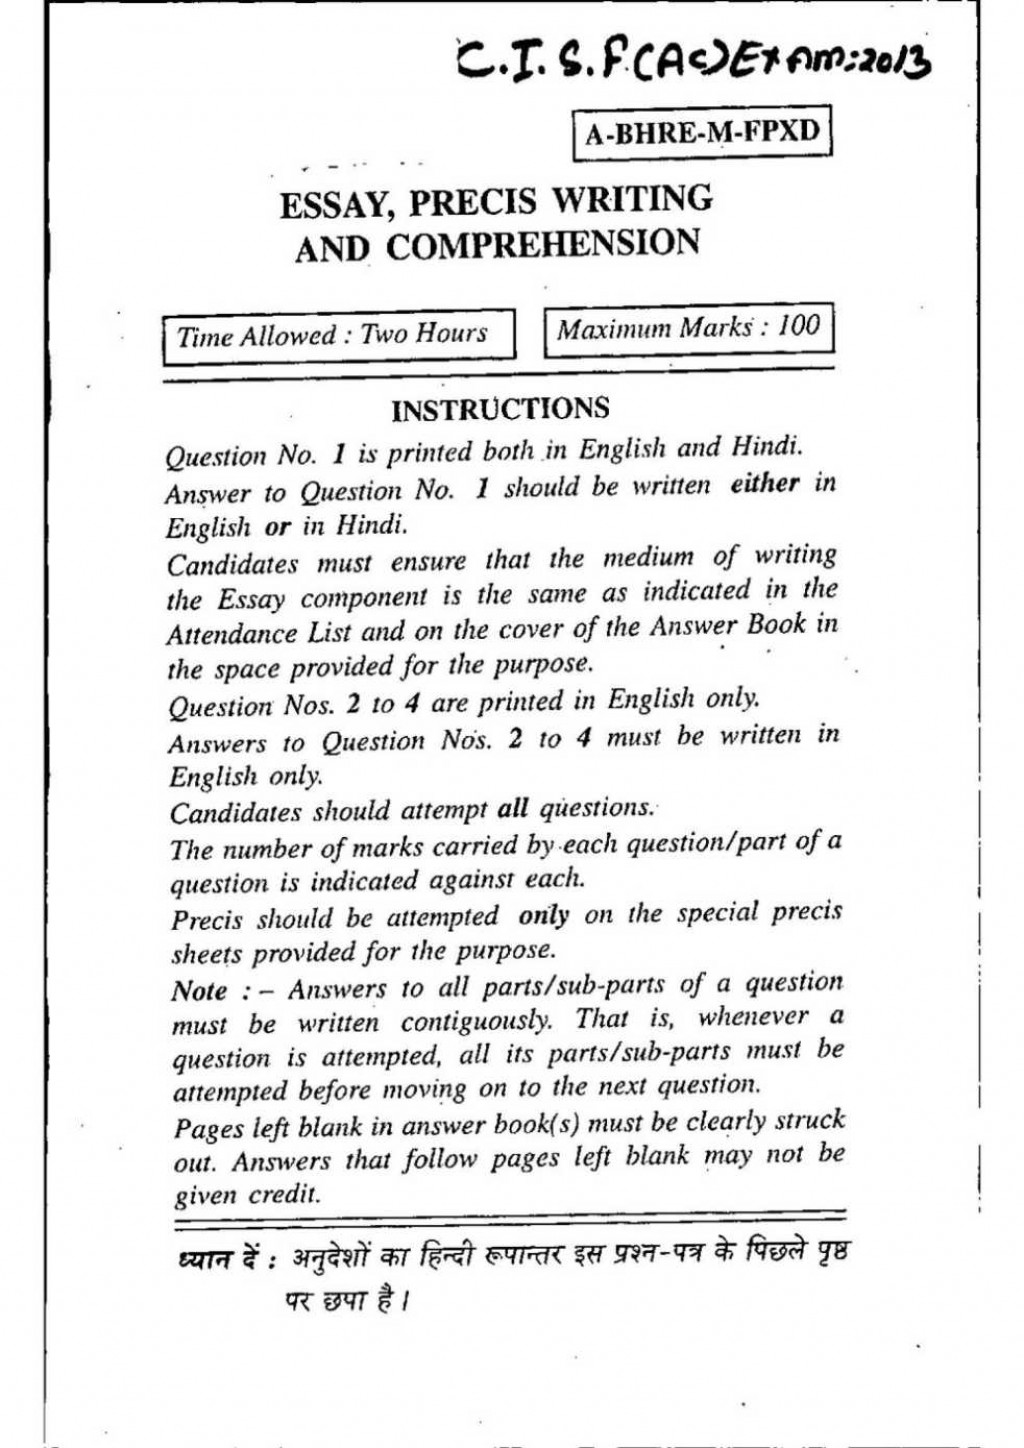 007 Bar Essays Essay For Exam On Exams Student Services The How To Write Good Upsc Cisf Ltd Departmental Competitive Precis Writing And Comp California Incredible Baressays Coupon Code Baressays.com Ny Predictions Large